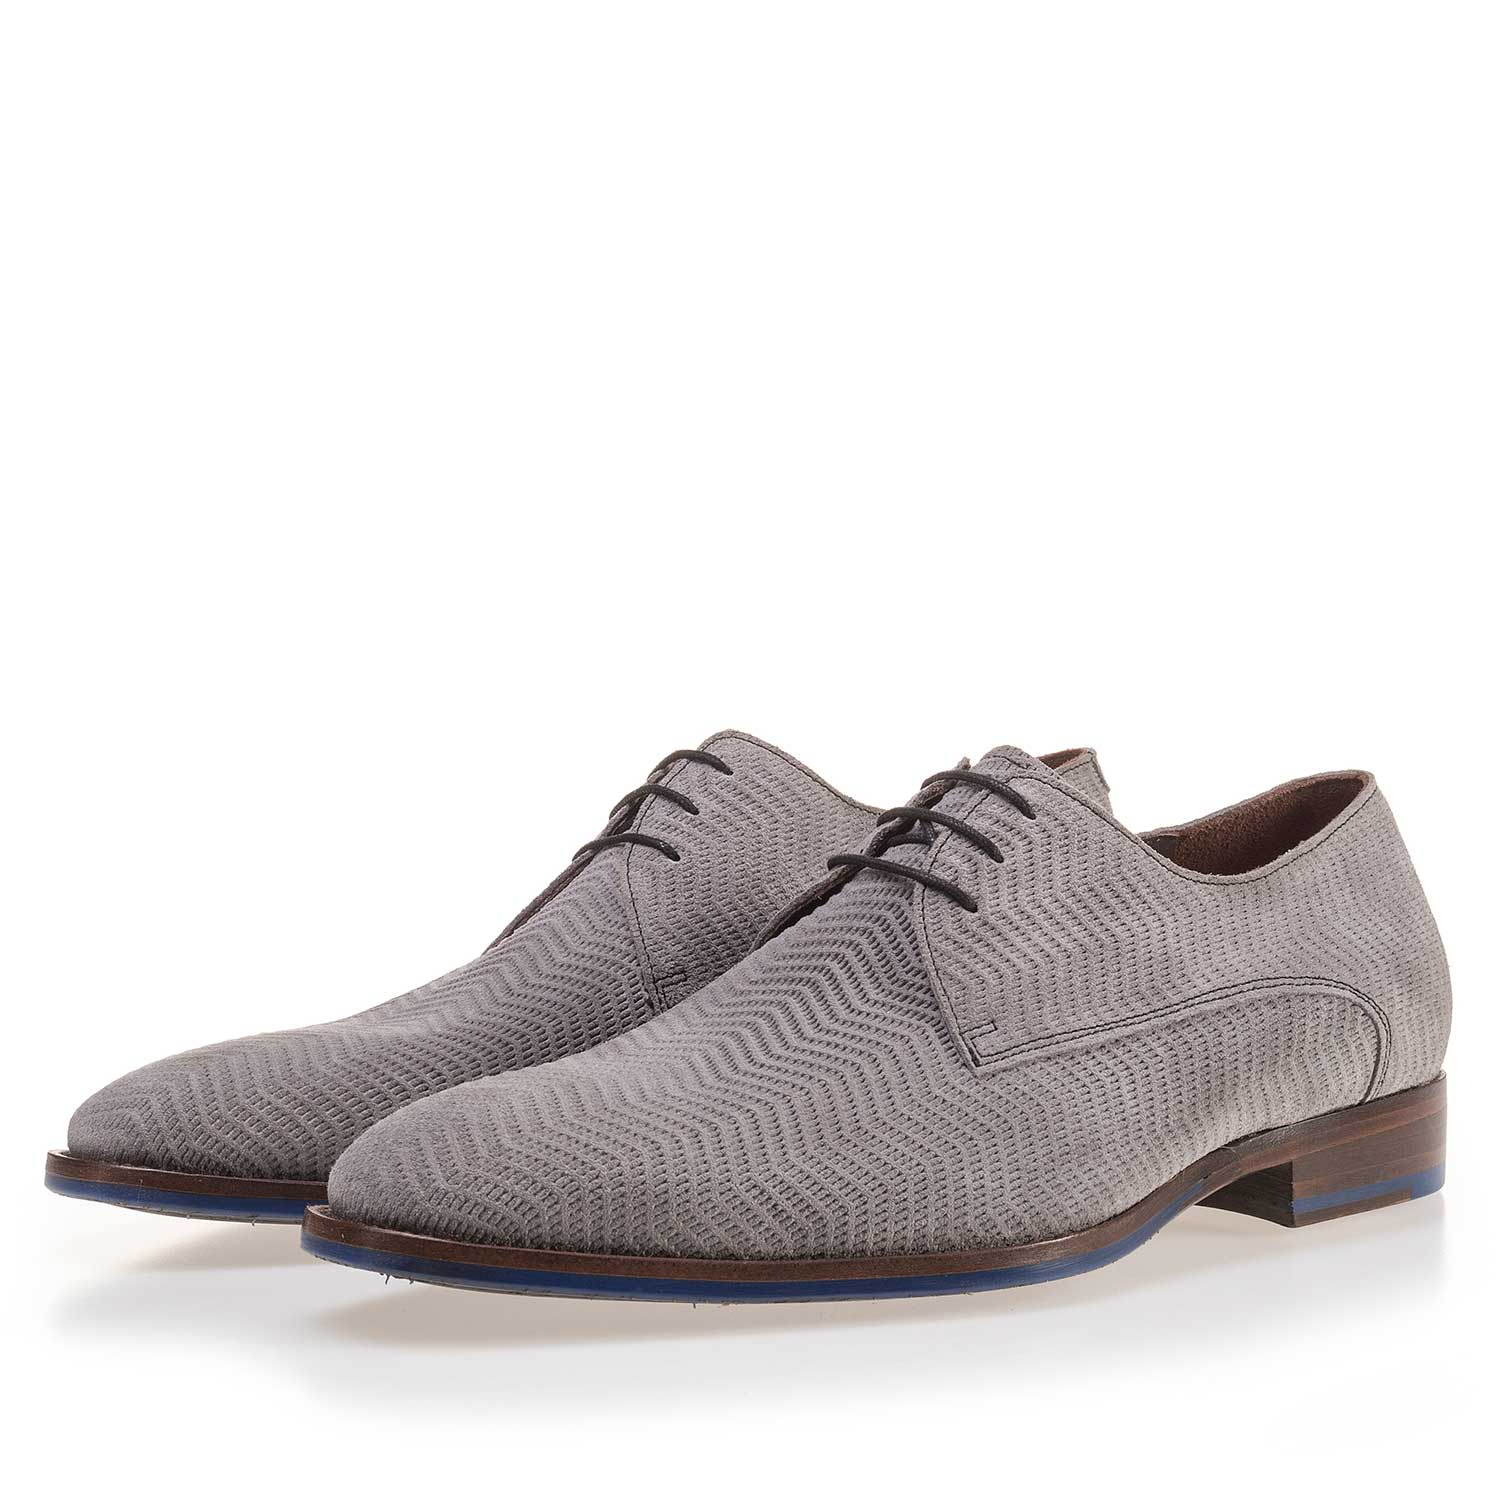 14146/04 - Grey suede lace shoe with pattern